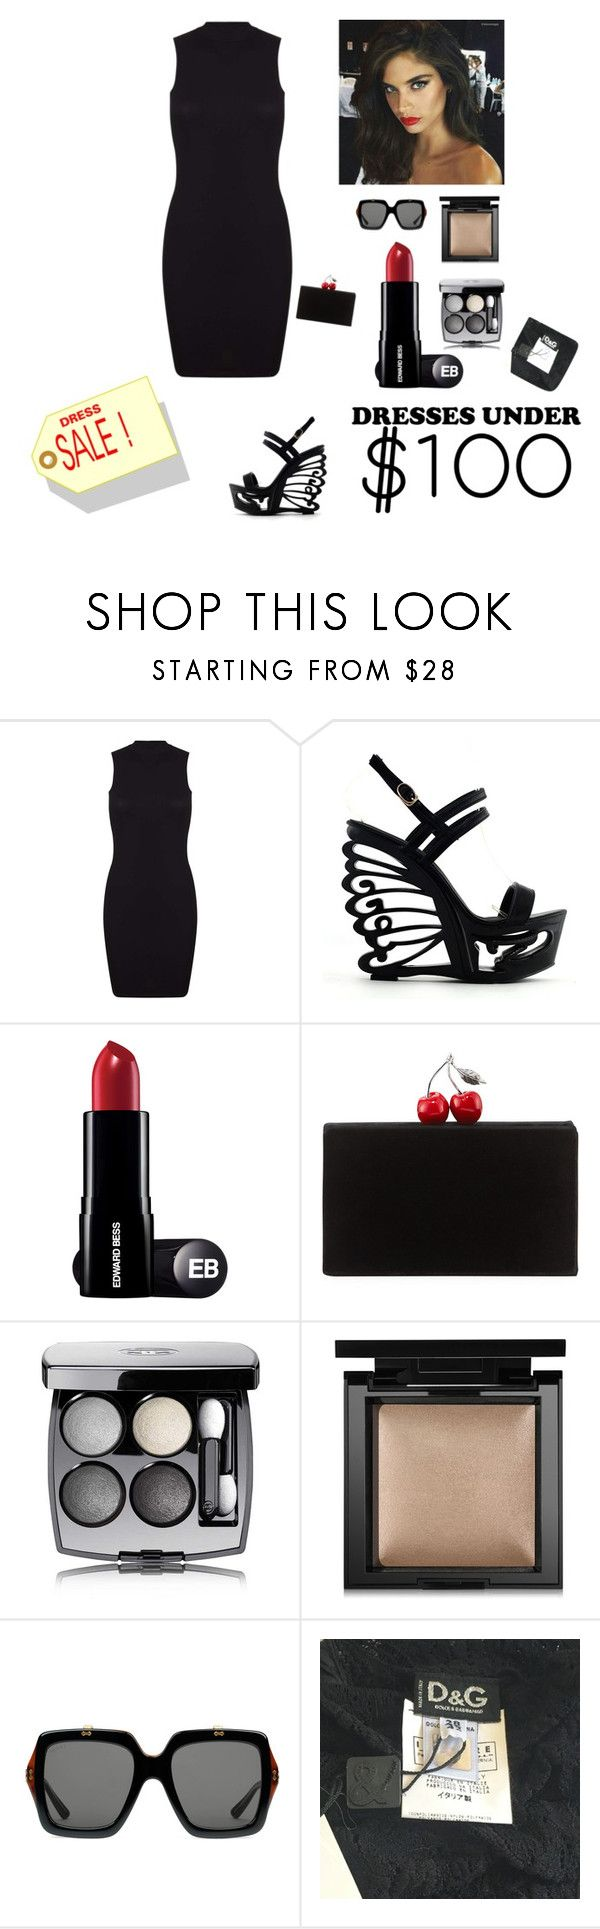 """""""Store Sale"""" by kotnourka ❤ liked on Polyvore featuring Miss Selfridge, Edie Parker, Chanel, Bare Escentuals, Gucci and D&G"""